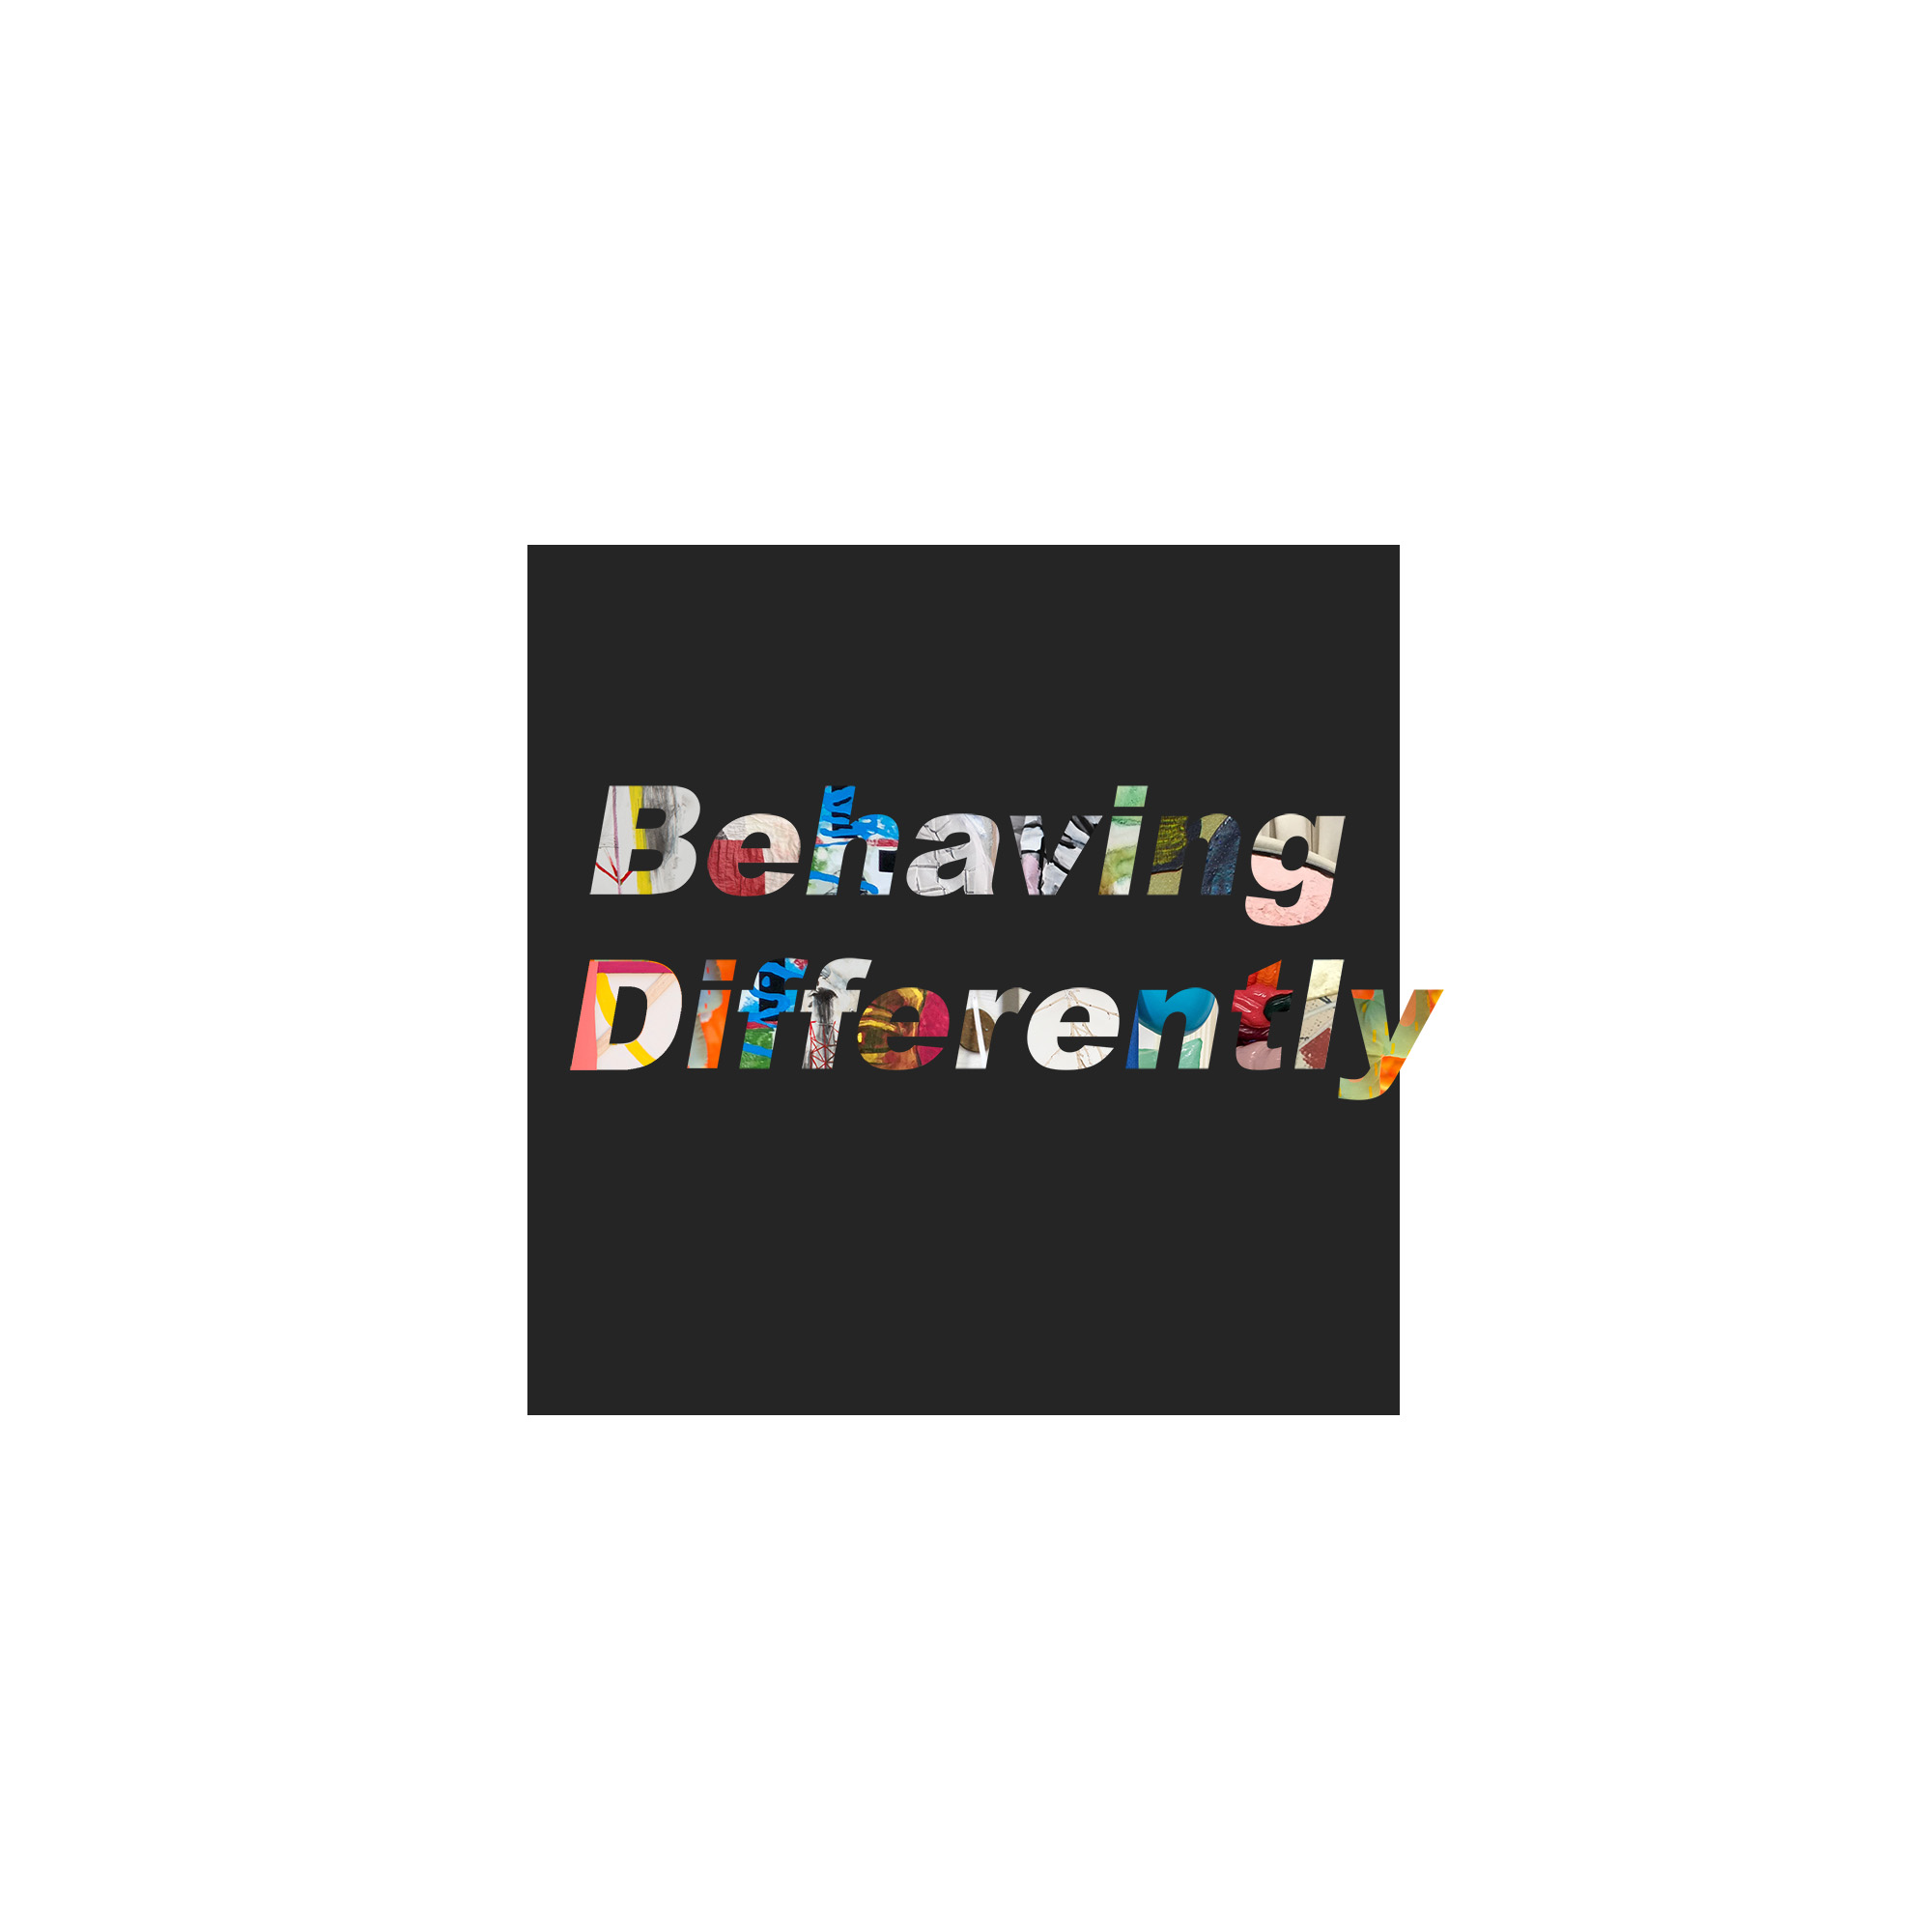 Behaving Differently - Promo Image.jpg